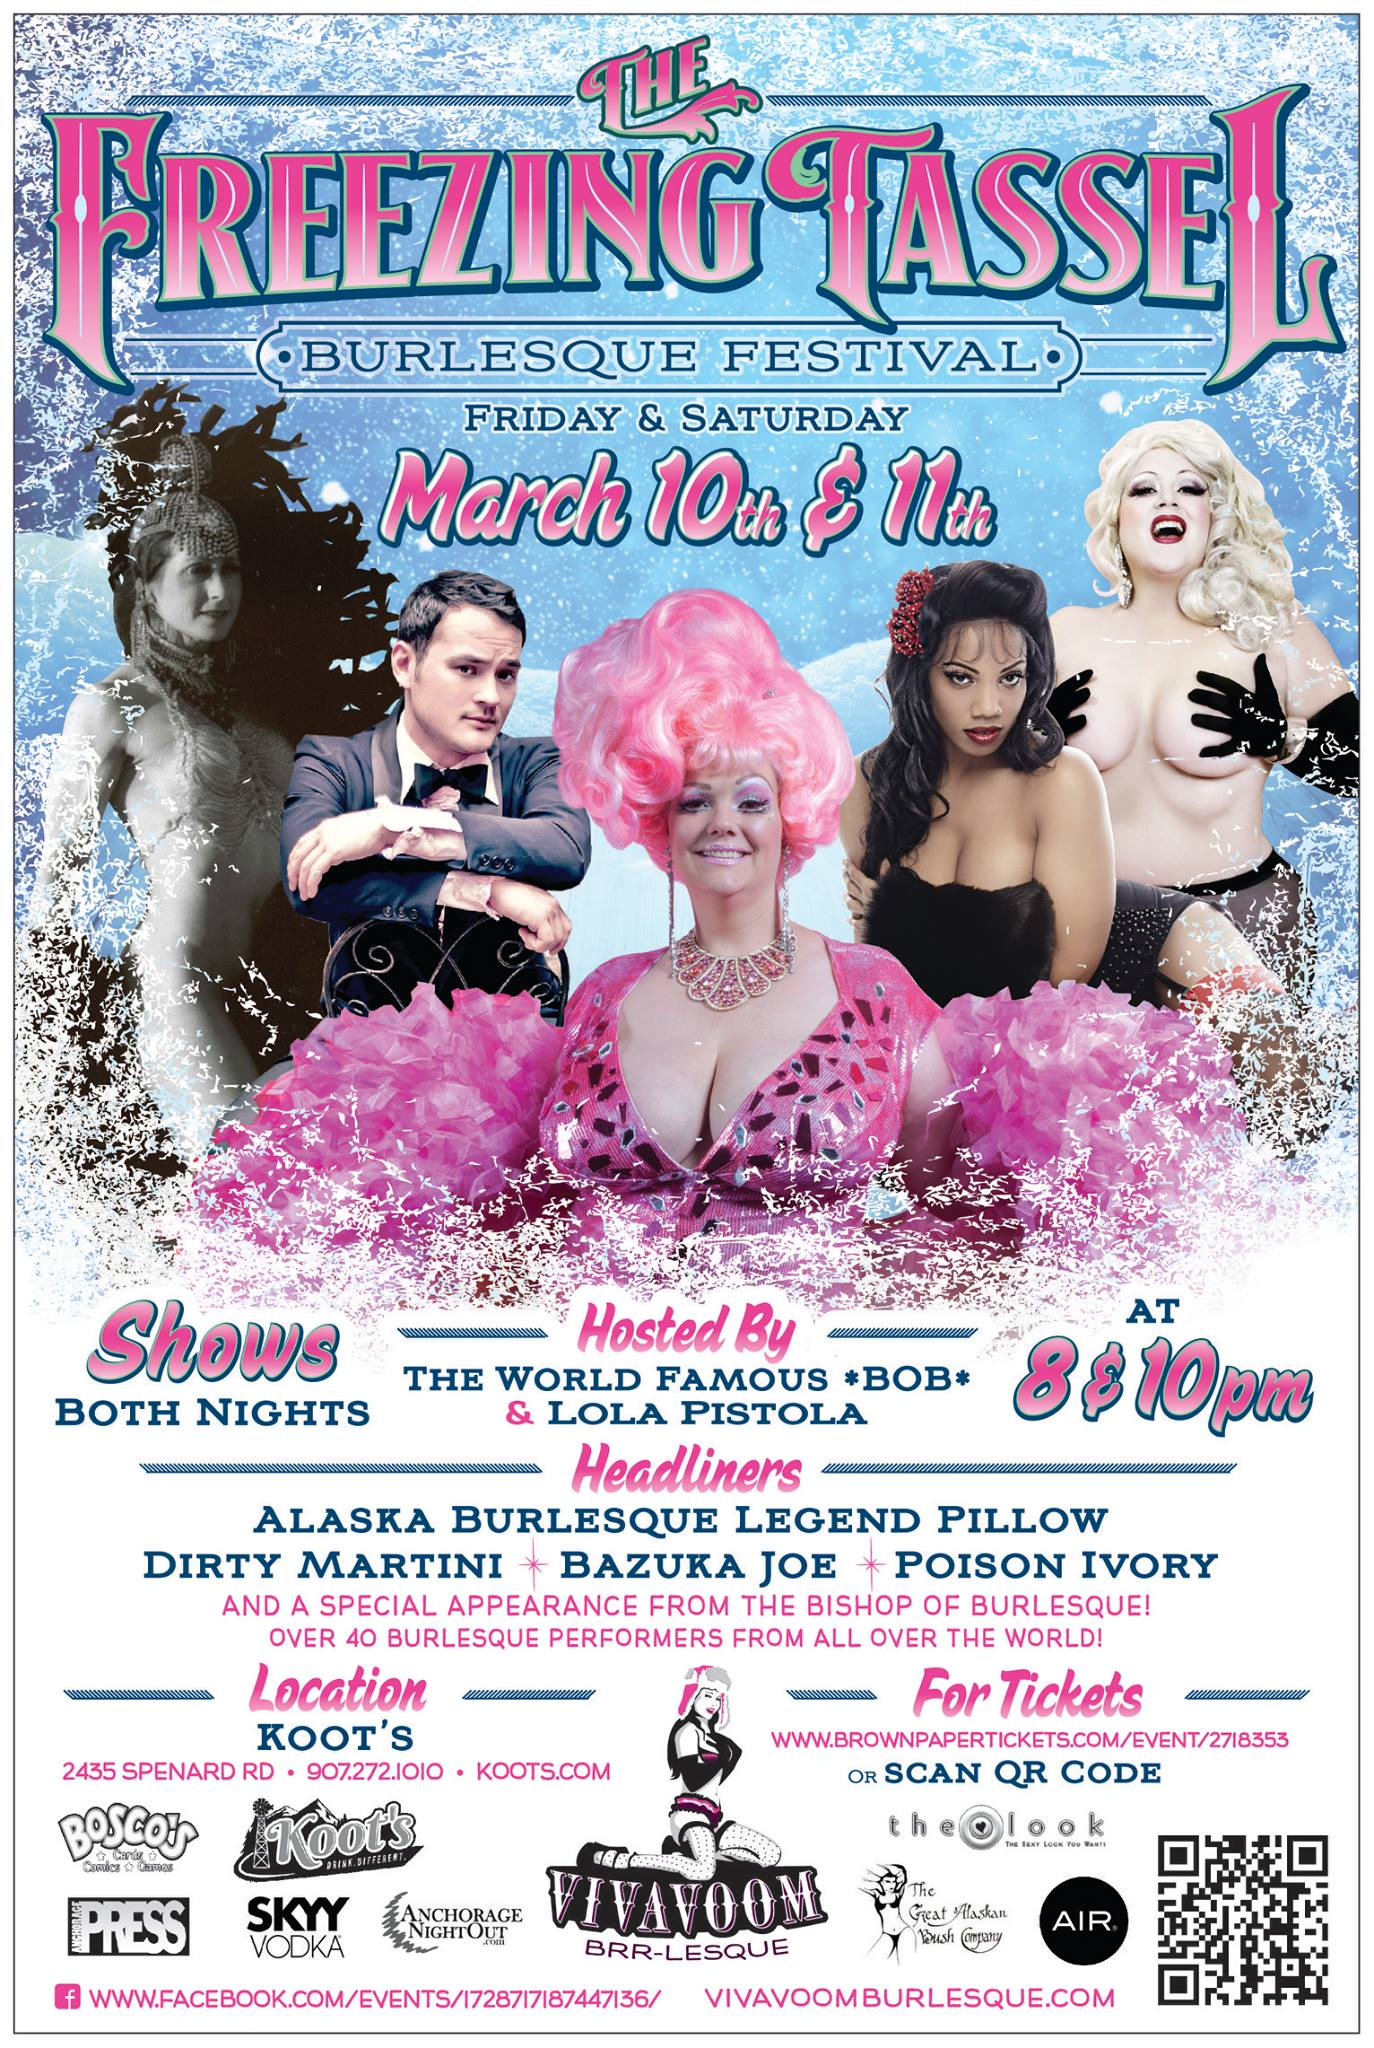 Freezing Tassel Burlesque Festival